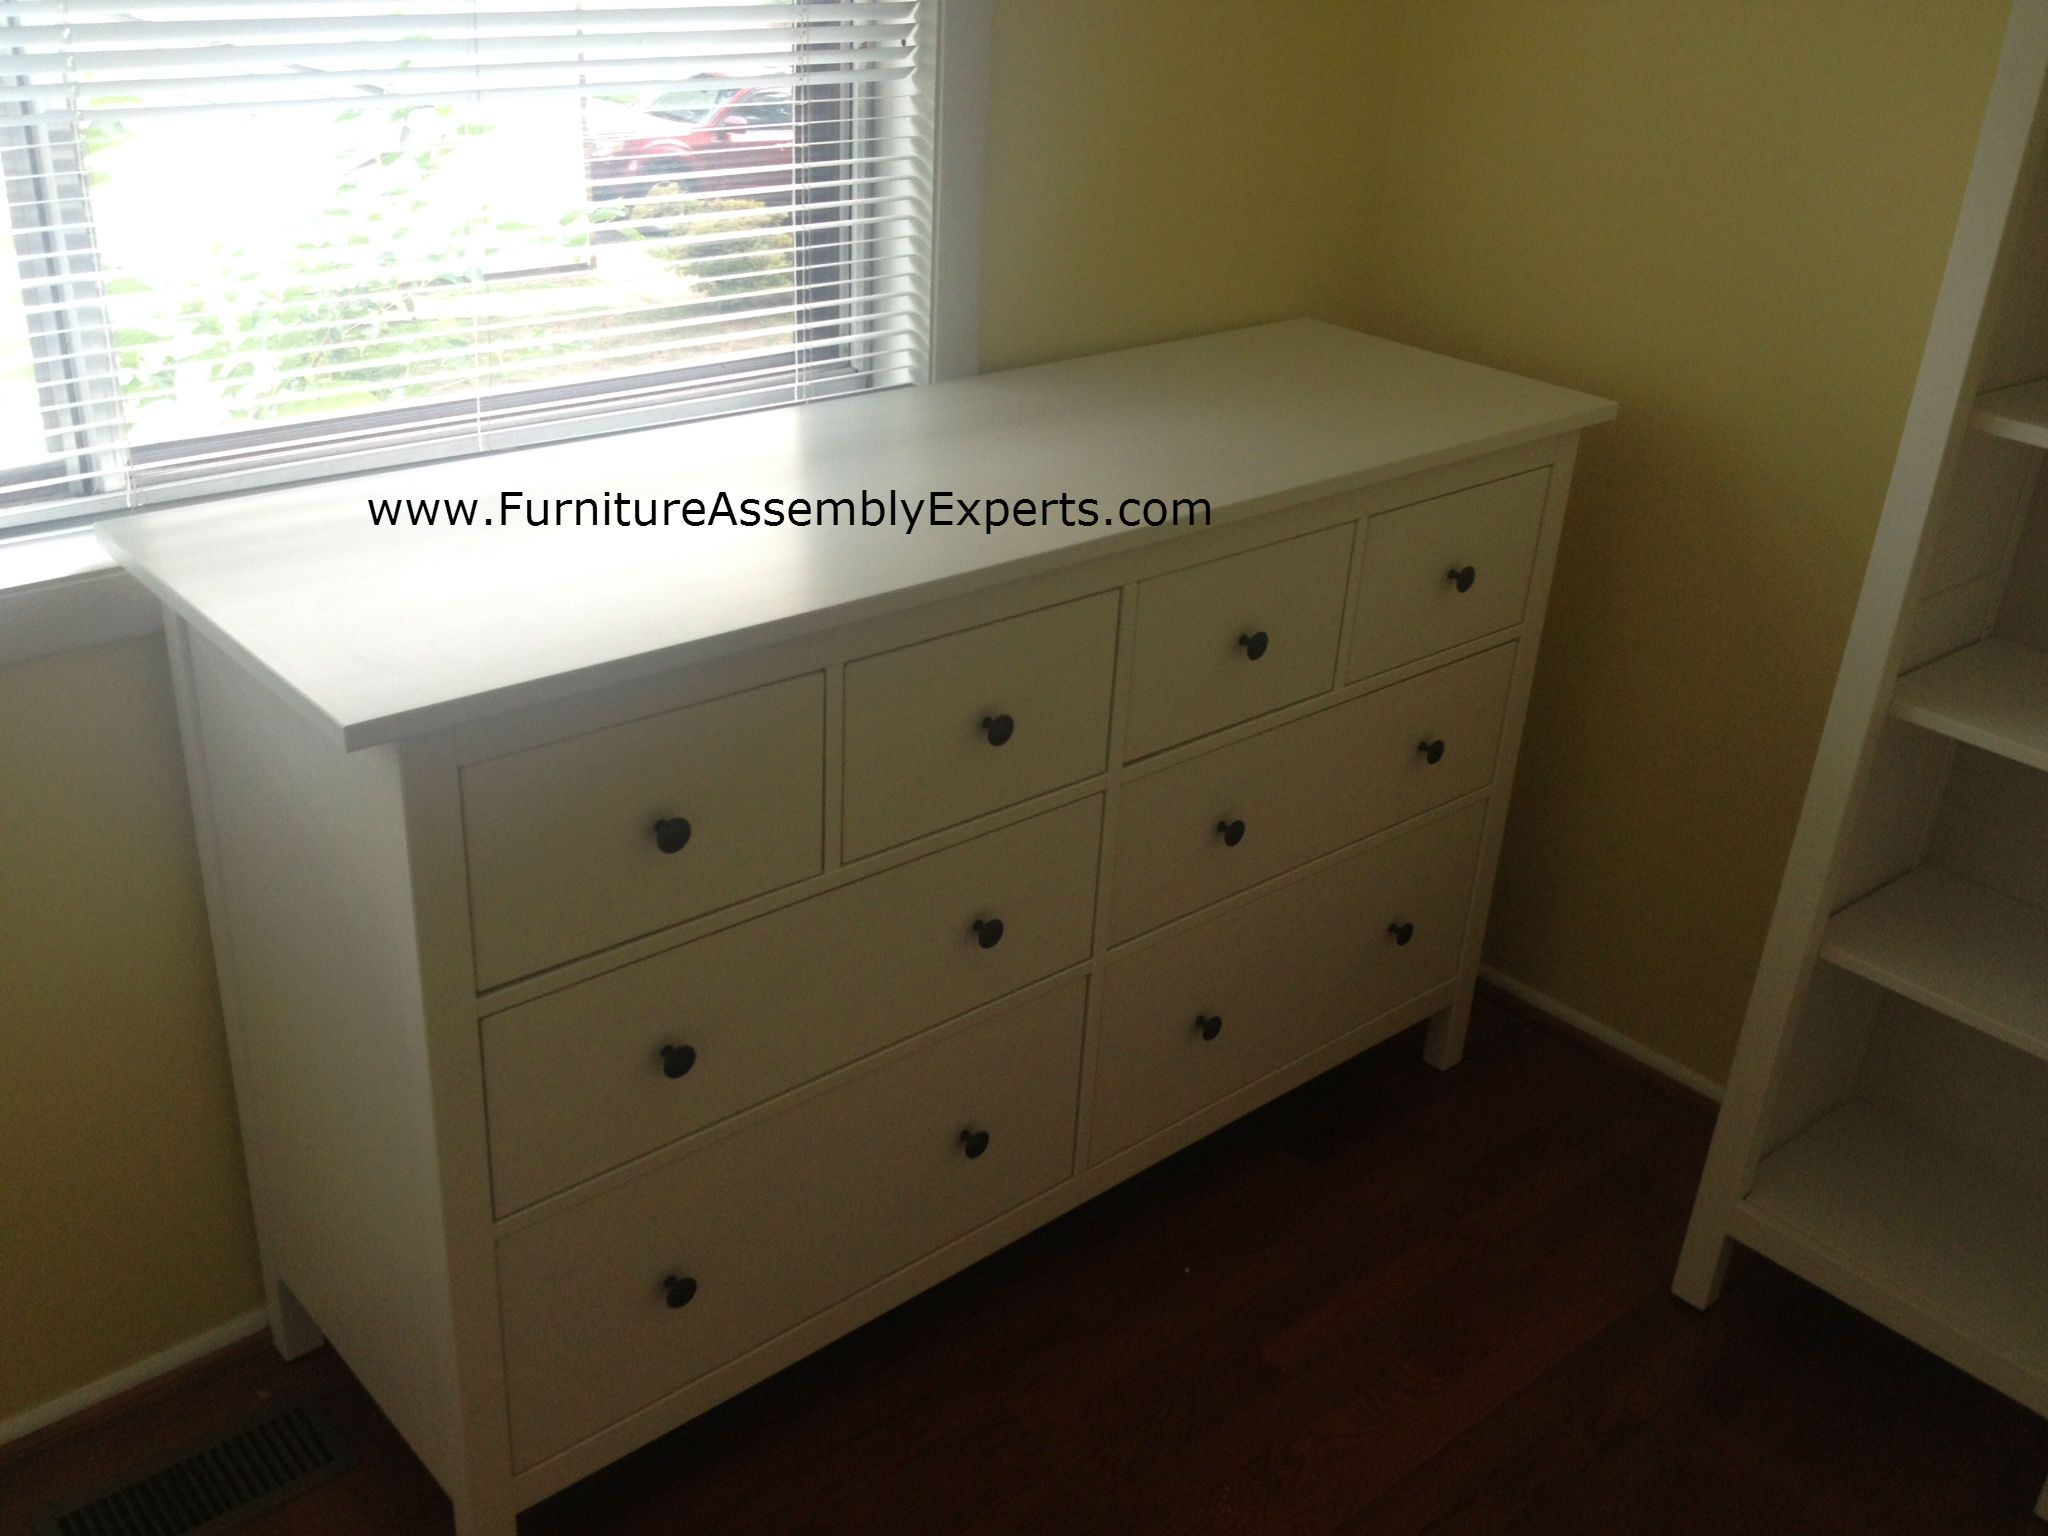 IKEA #Hemnes dressing table assembly